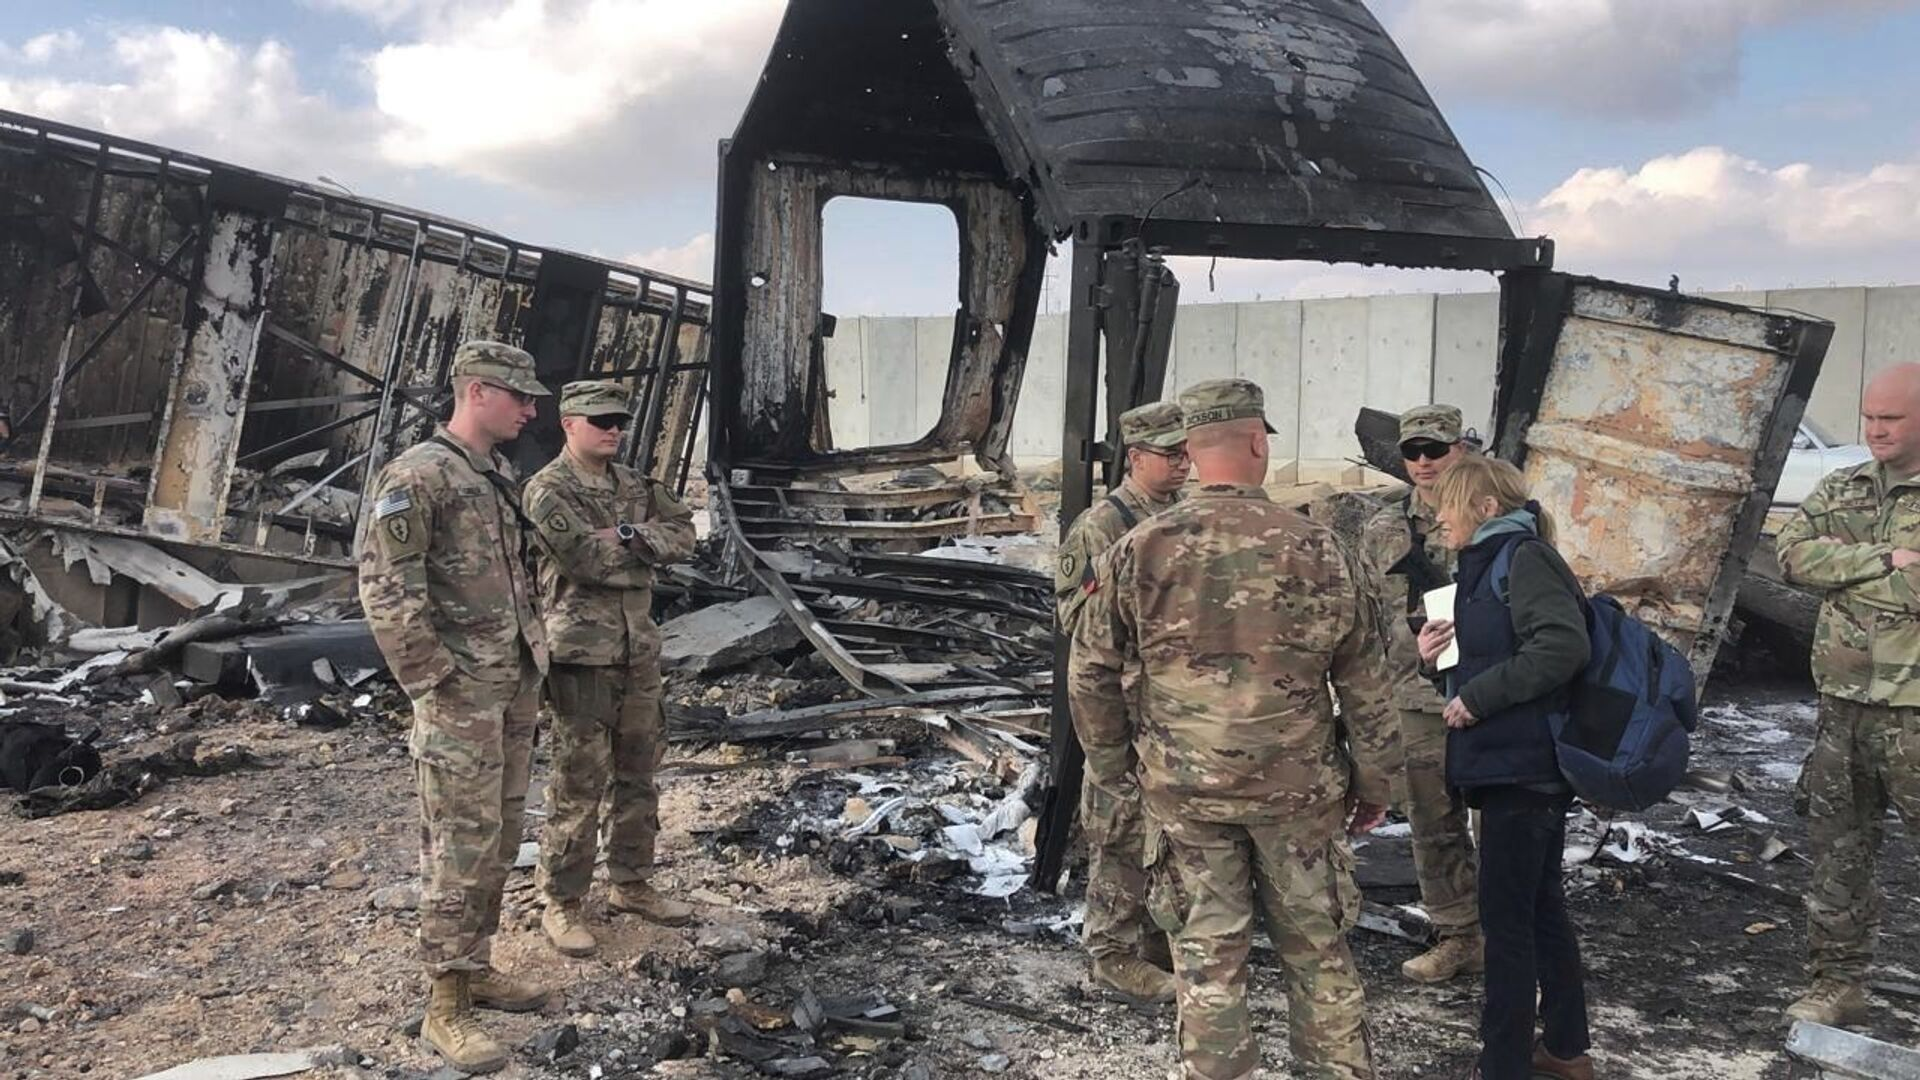 U.S. Soldiers stand amid damage at a site of Iranian bombing at Ain al-Asad air base, in Anbar, Iraq, Monday, Jan. 13, 2020. Ain al-Asad air base was struck by a barrage of Iranian missiles on Wednesday, in retaliation for the U.S. drone strike that killed atop Iranian commander, Gen. Qassem Soleimani, whose killing raised fears of a wider war in the Middle East.  - Sputnik International, 1920, 07.09.2021